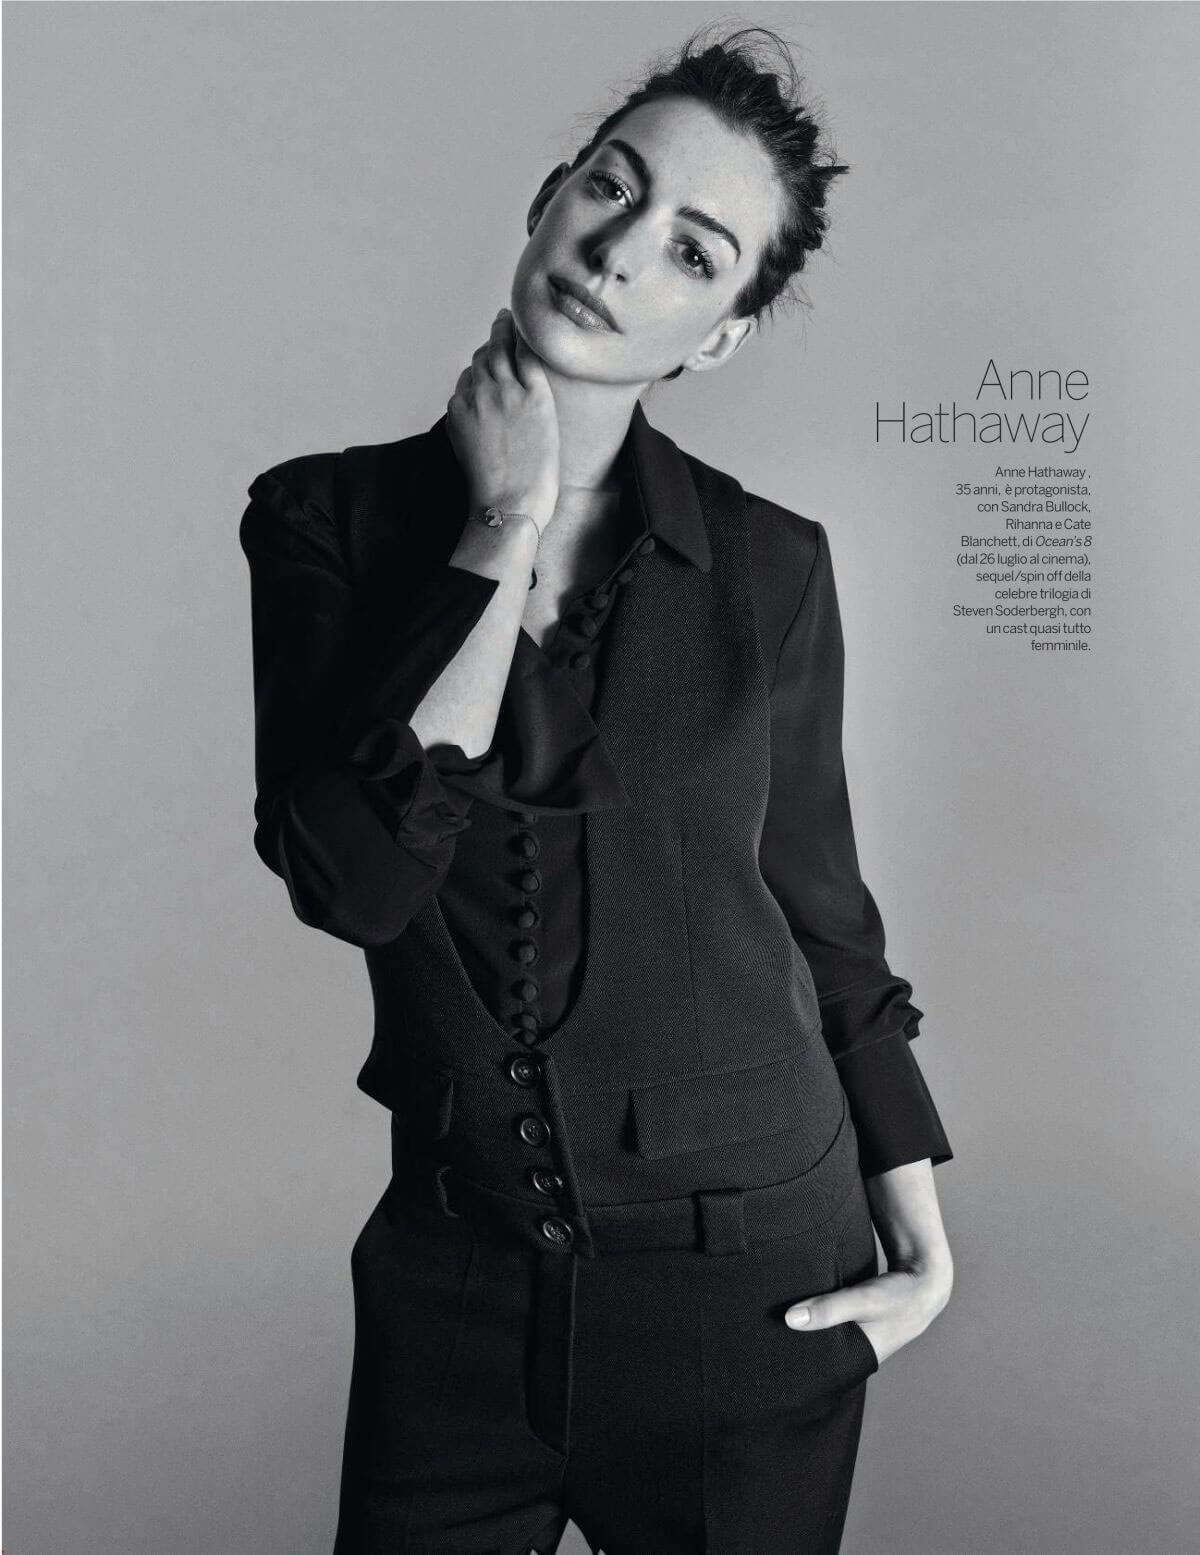 Anne Hathaway Stills in Gioia! Magazine, June 2018 Issue 1